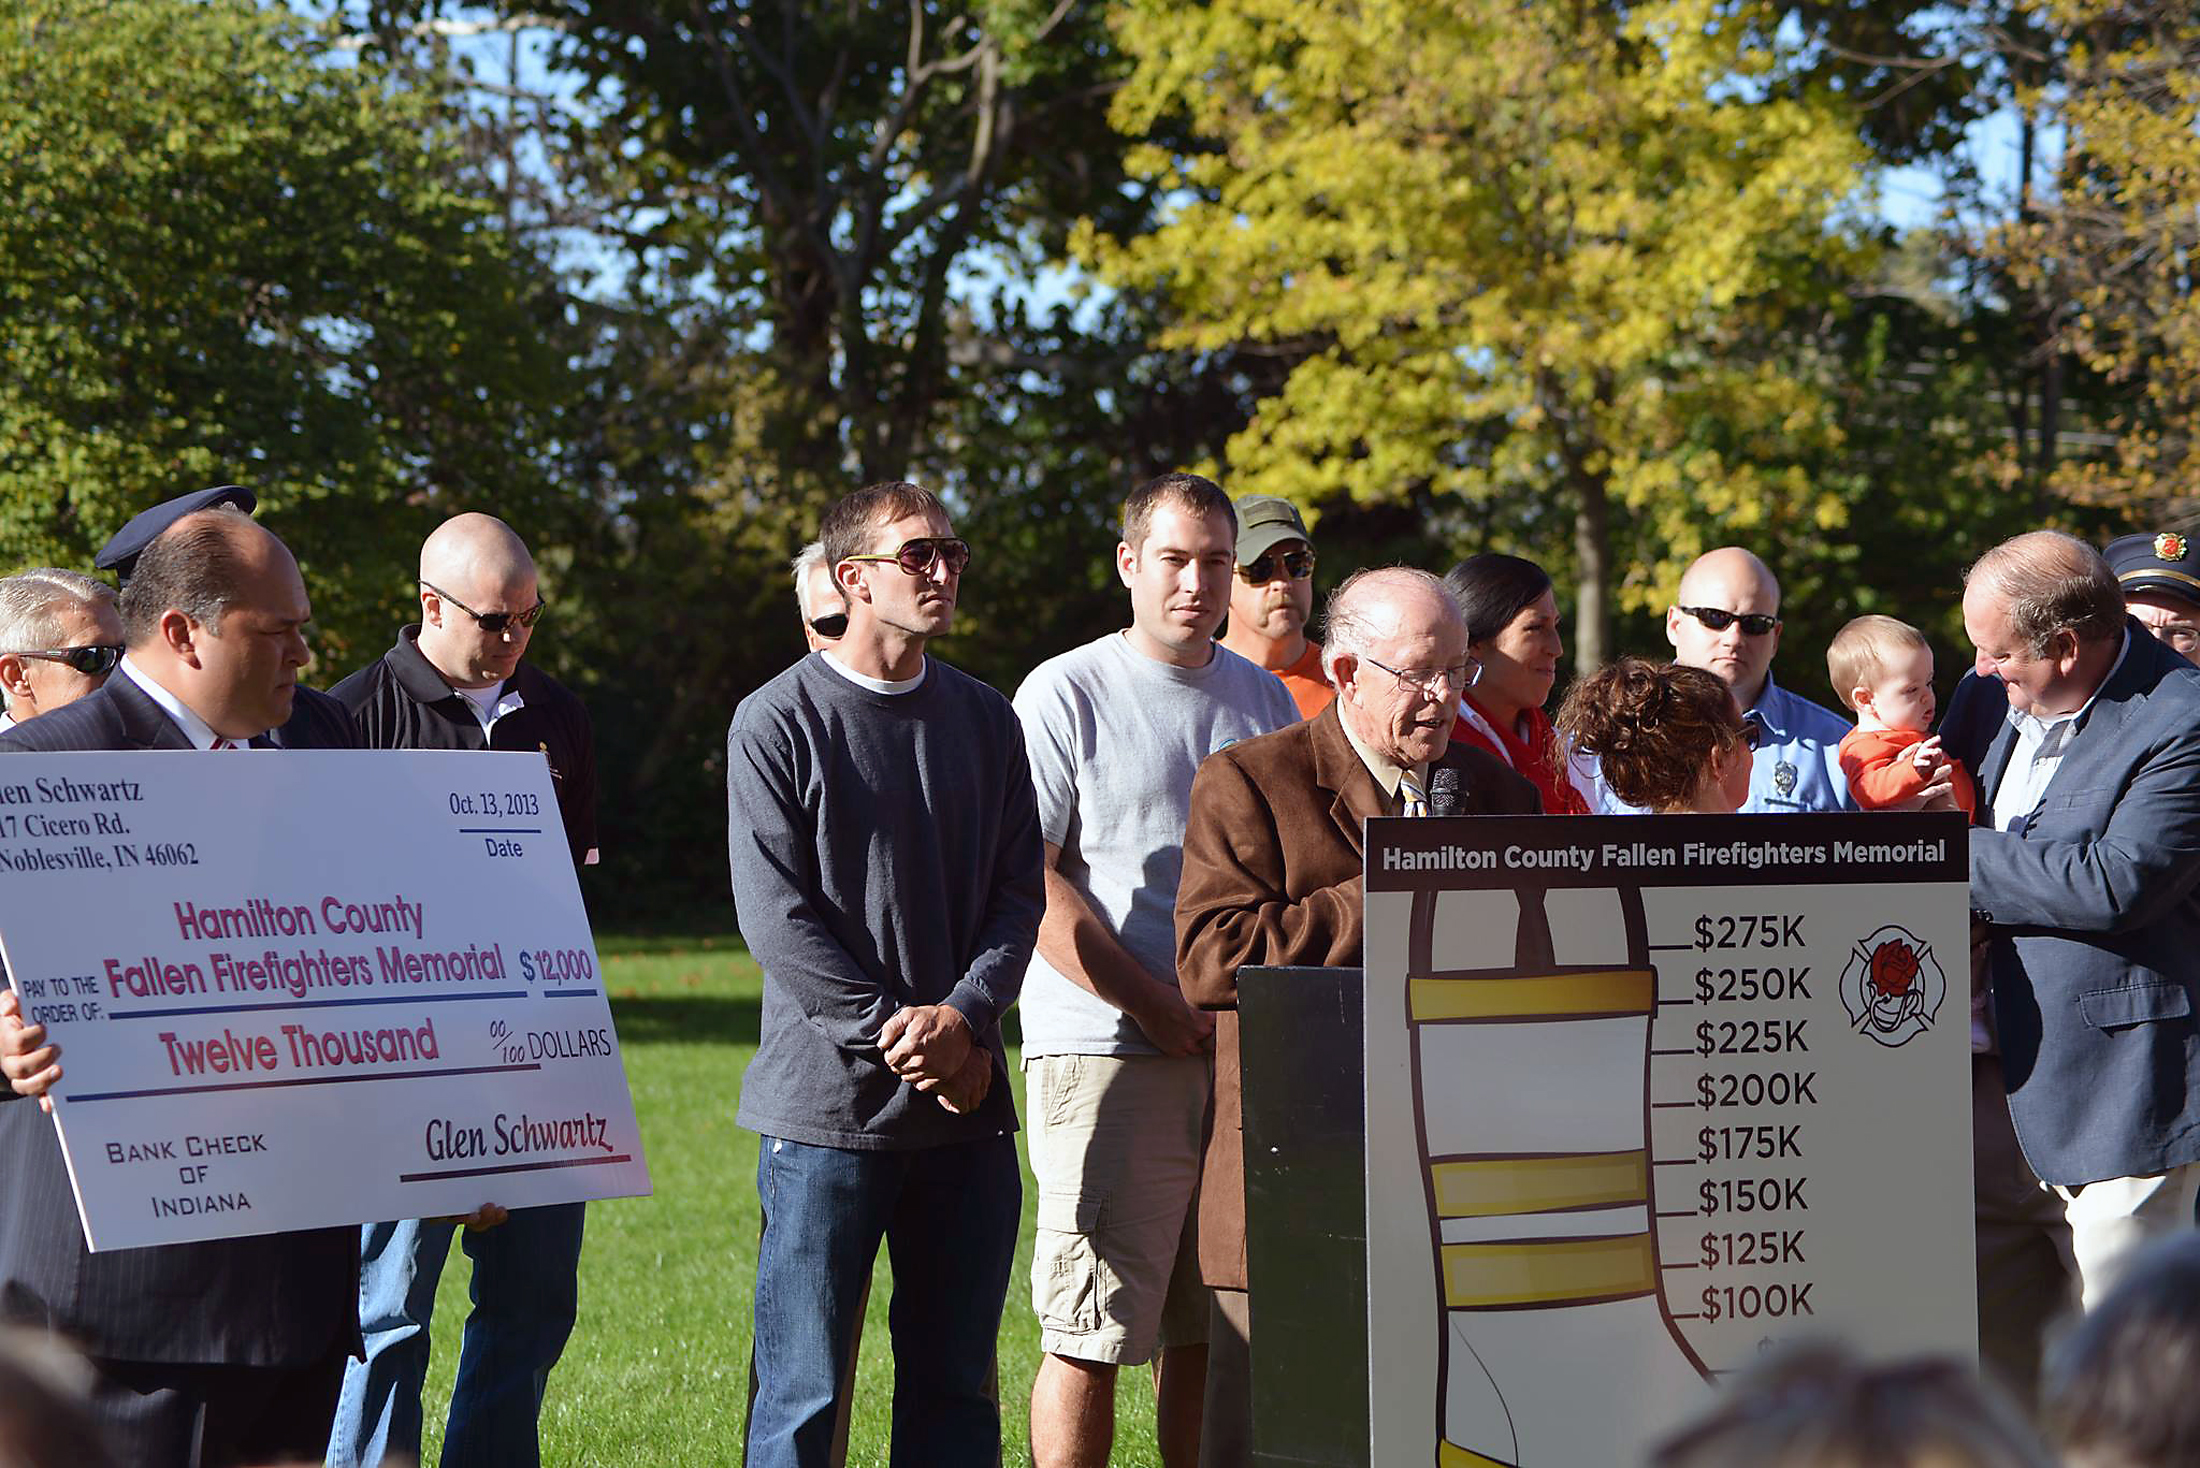 Surrounded by his family, Local 4416 President Tony Murray holds the $12,000 check presented by Glen Schwartz as he addresses the crowd on Oct. 13. (Submitted photo.)